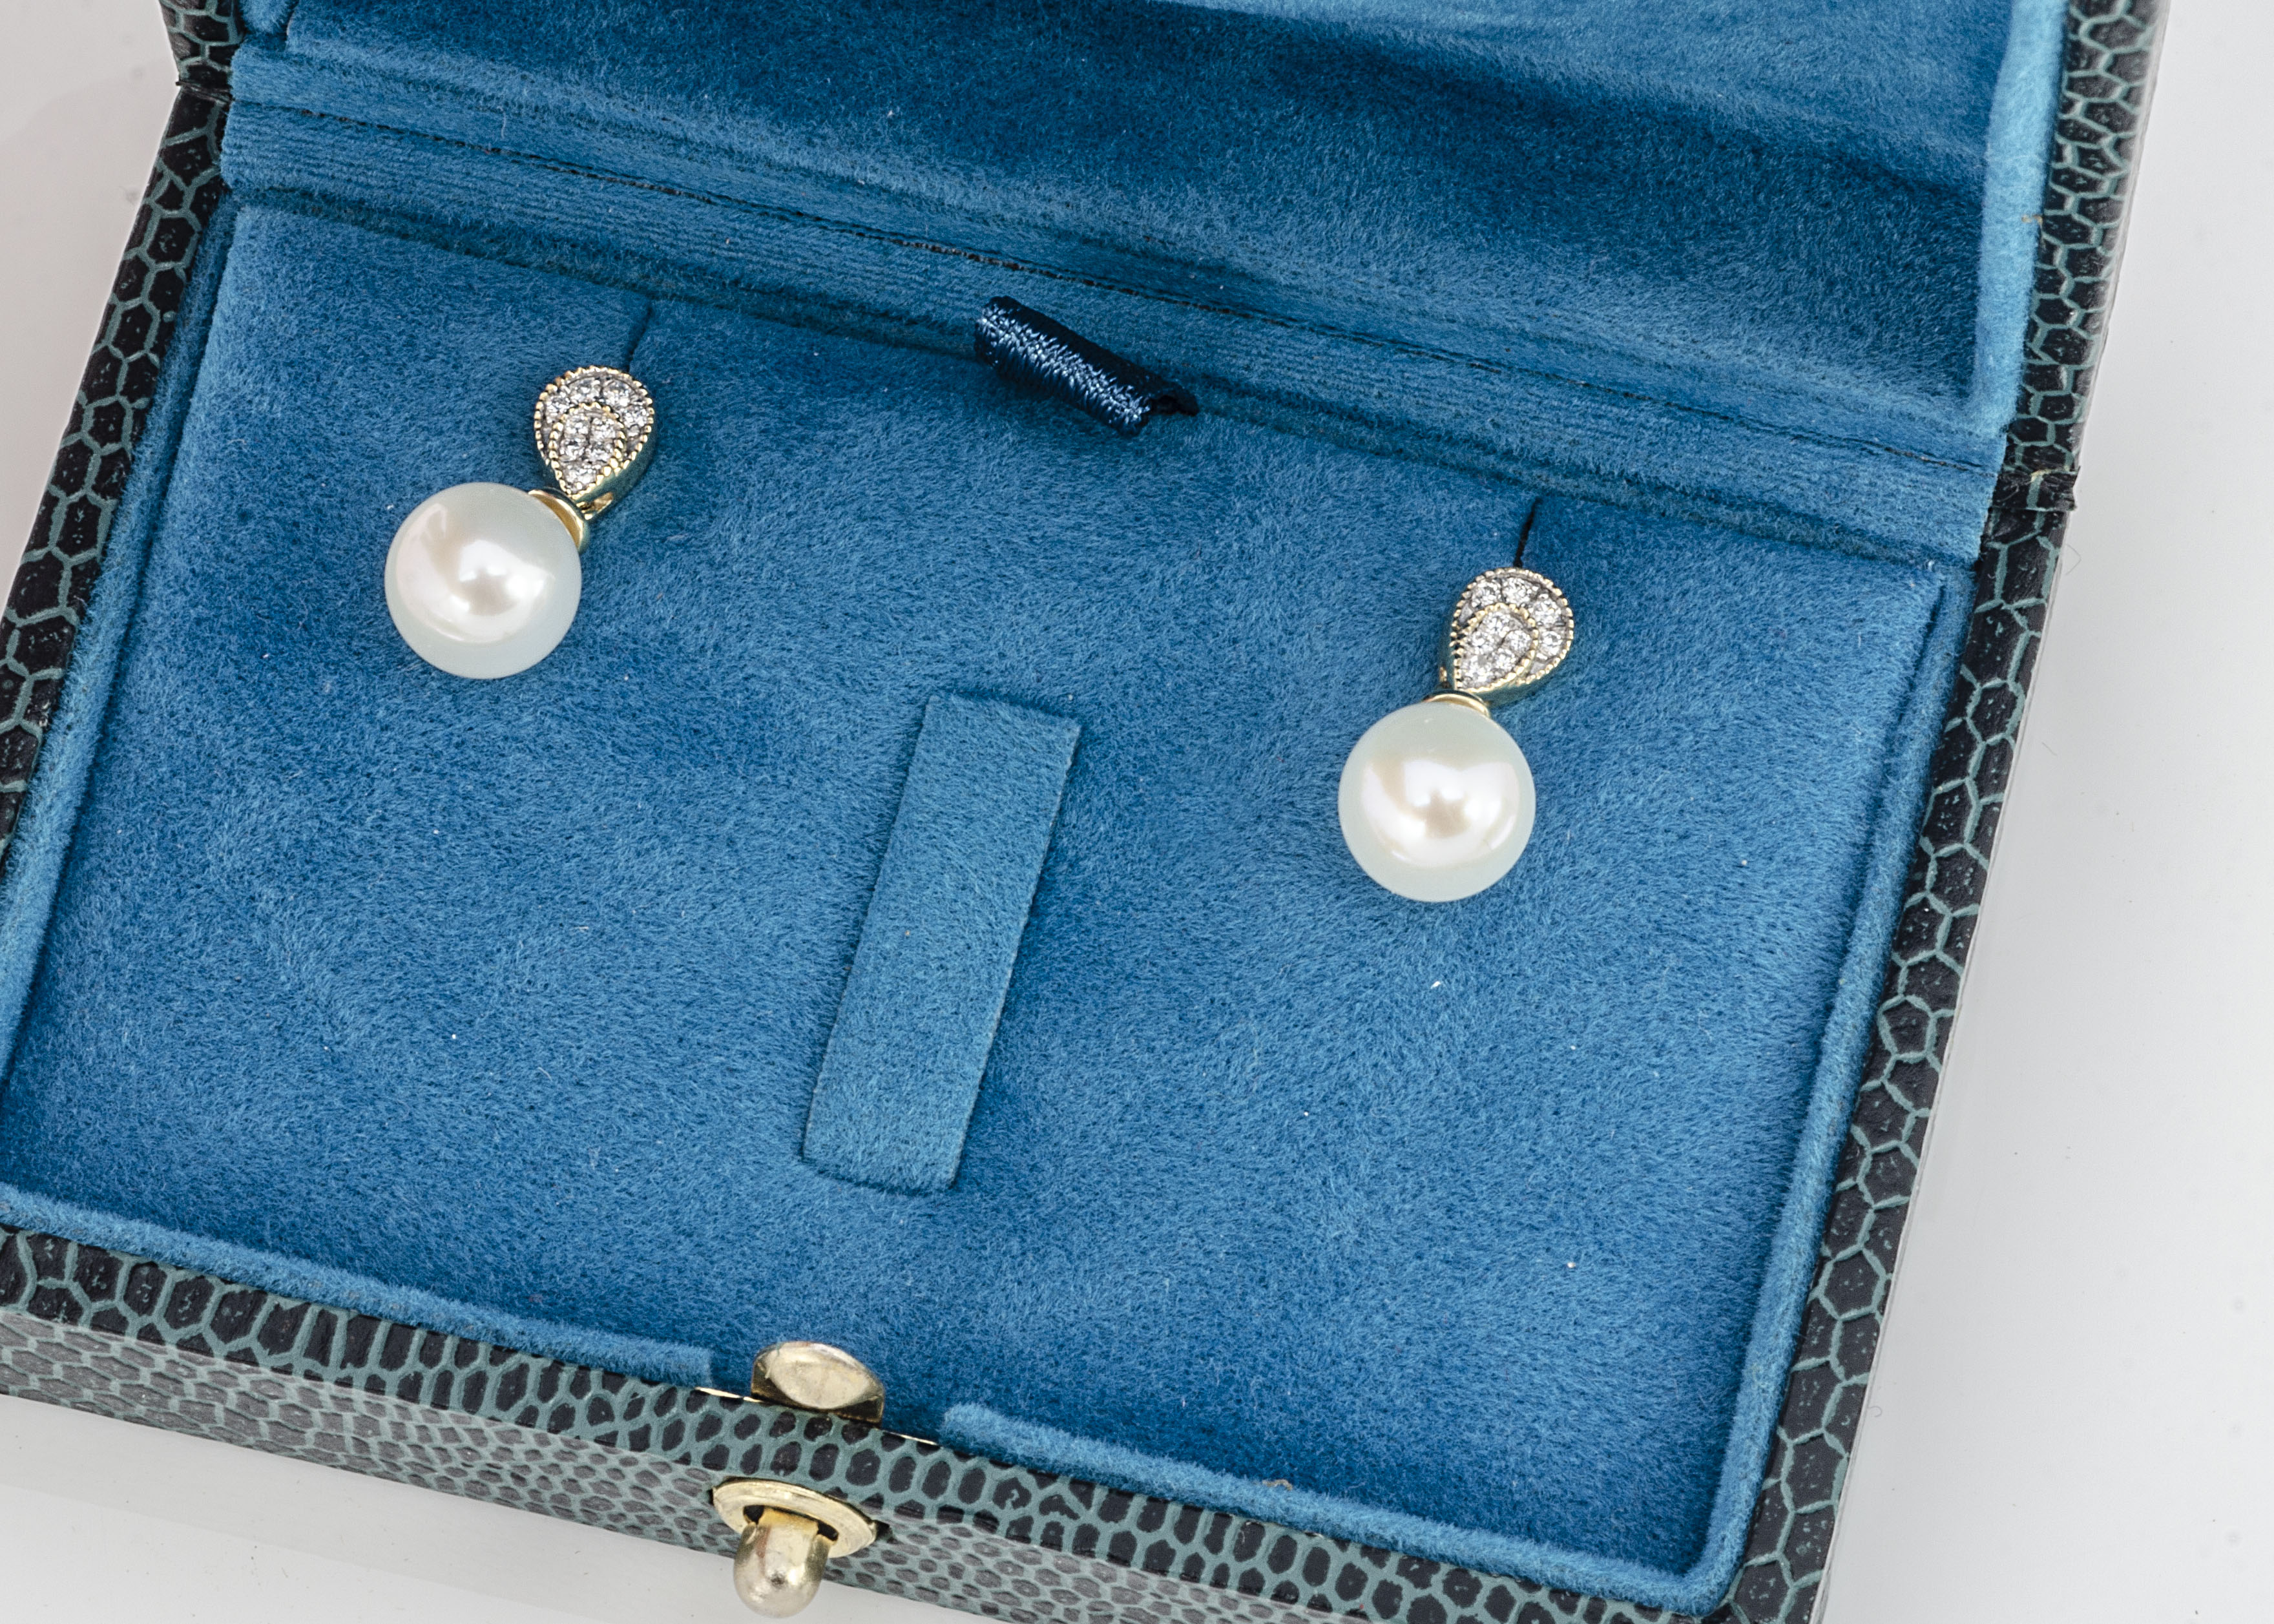 A pair of 9ct white gold diamond and pearl drop studs, the white pearls set in suspended loops on